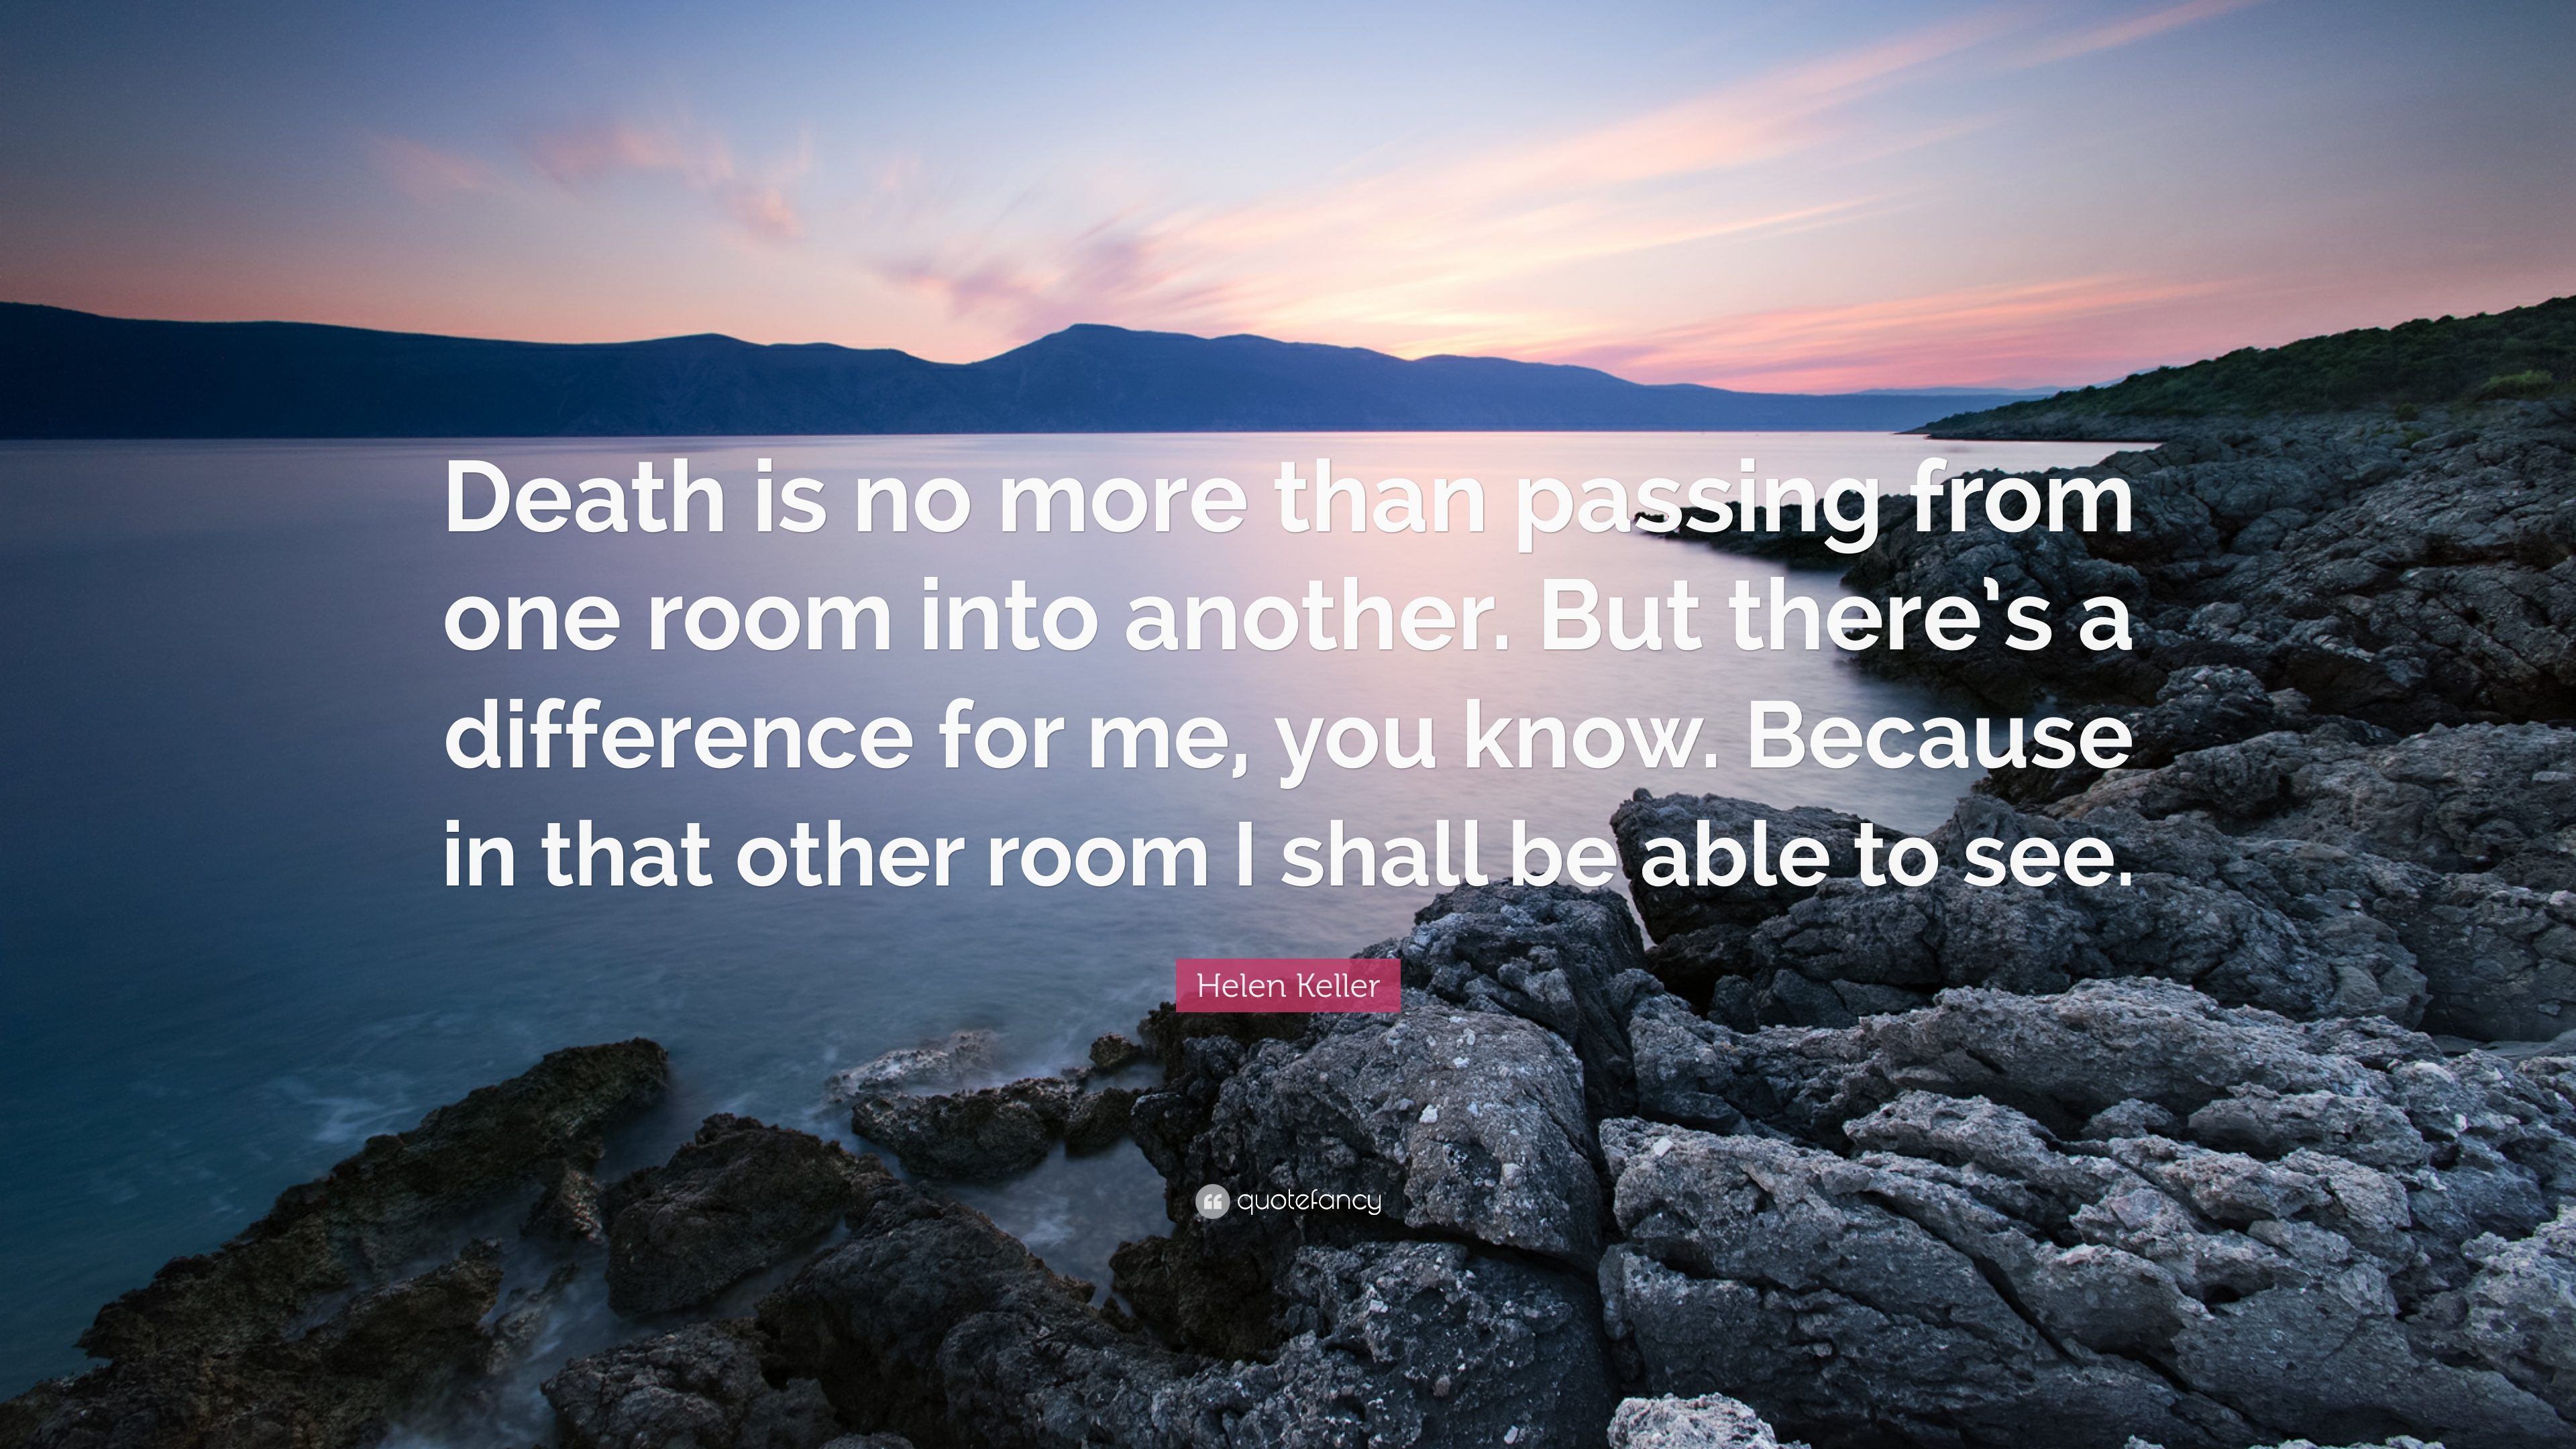 Helen Keller Quote Death Is No More Than Passing From One Room